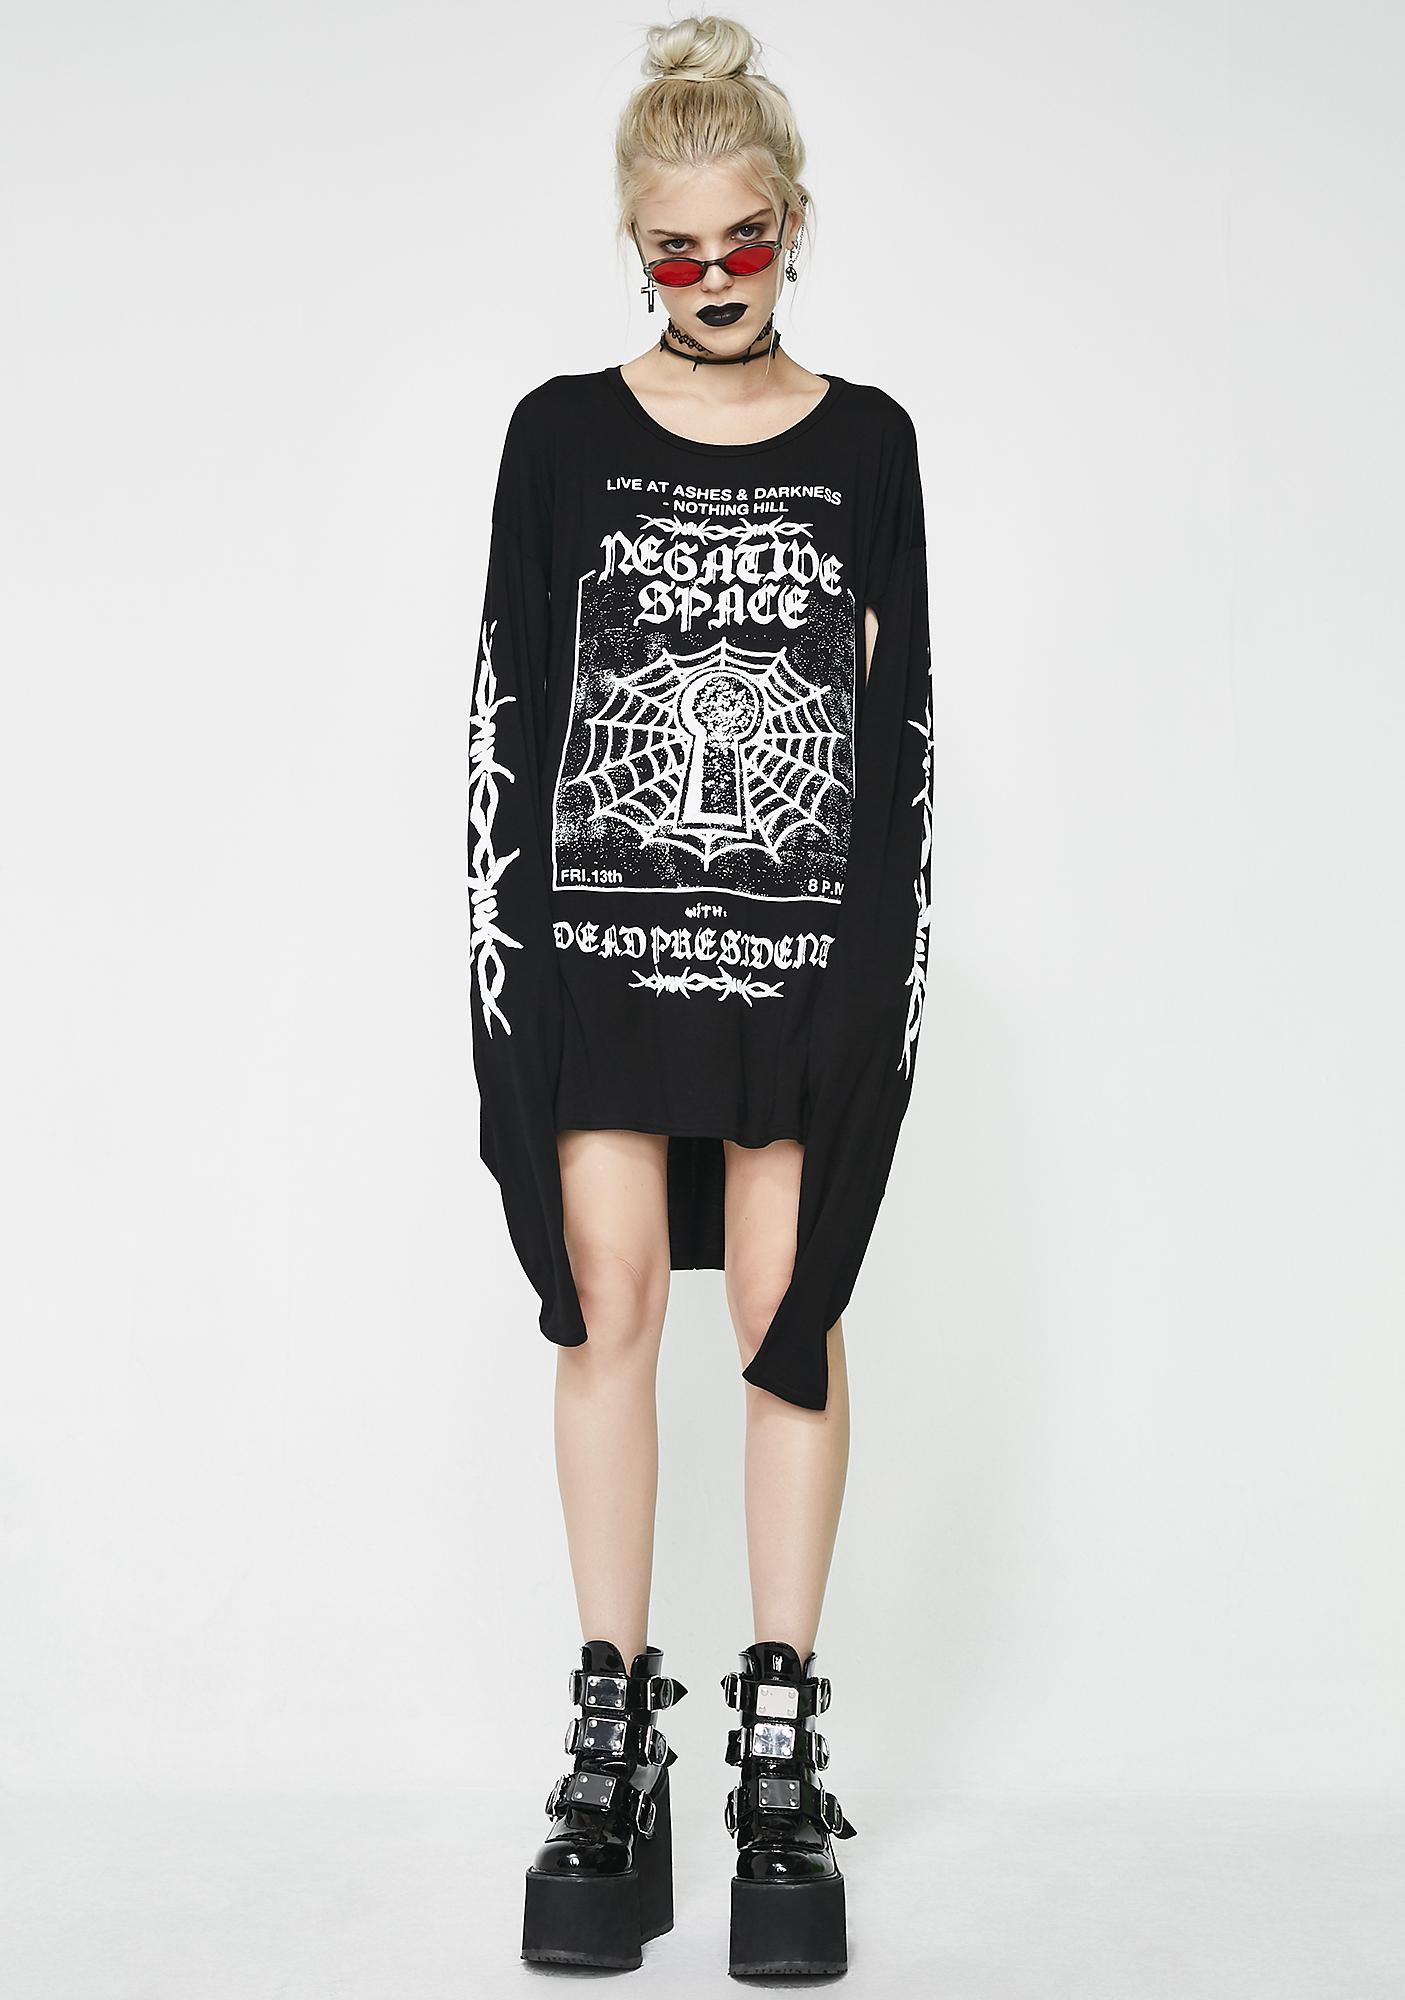 Disturbia Negative Space Cutout Tee